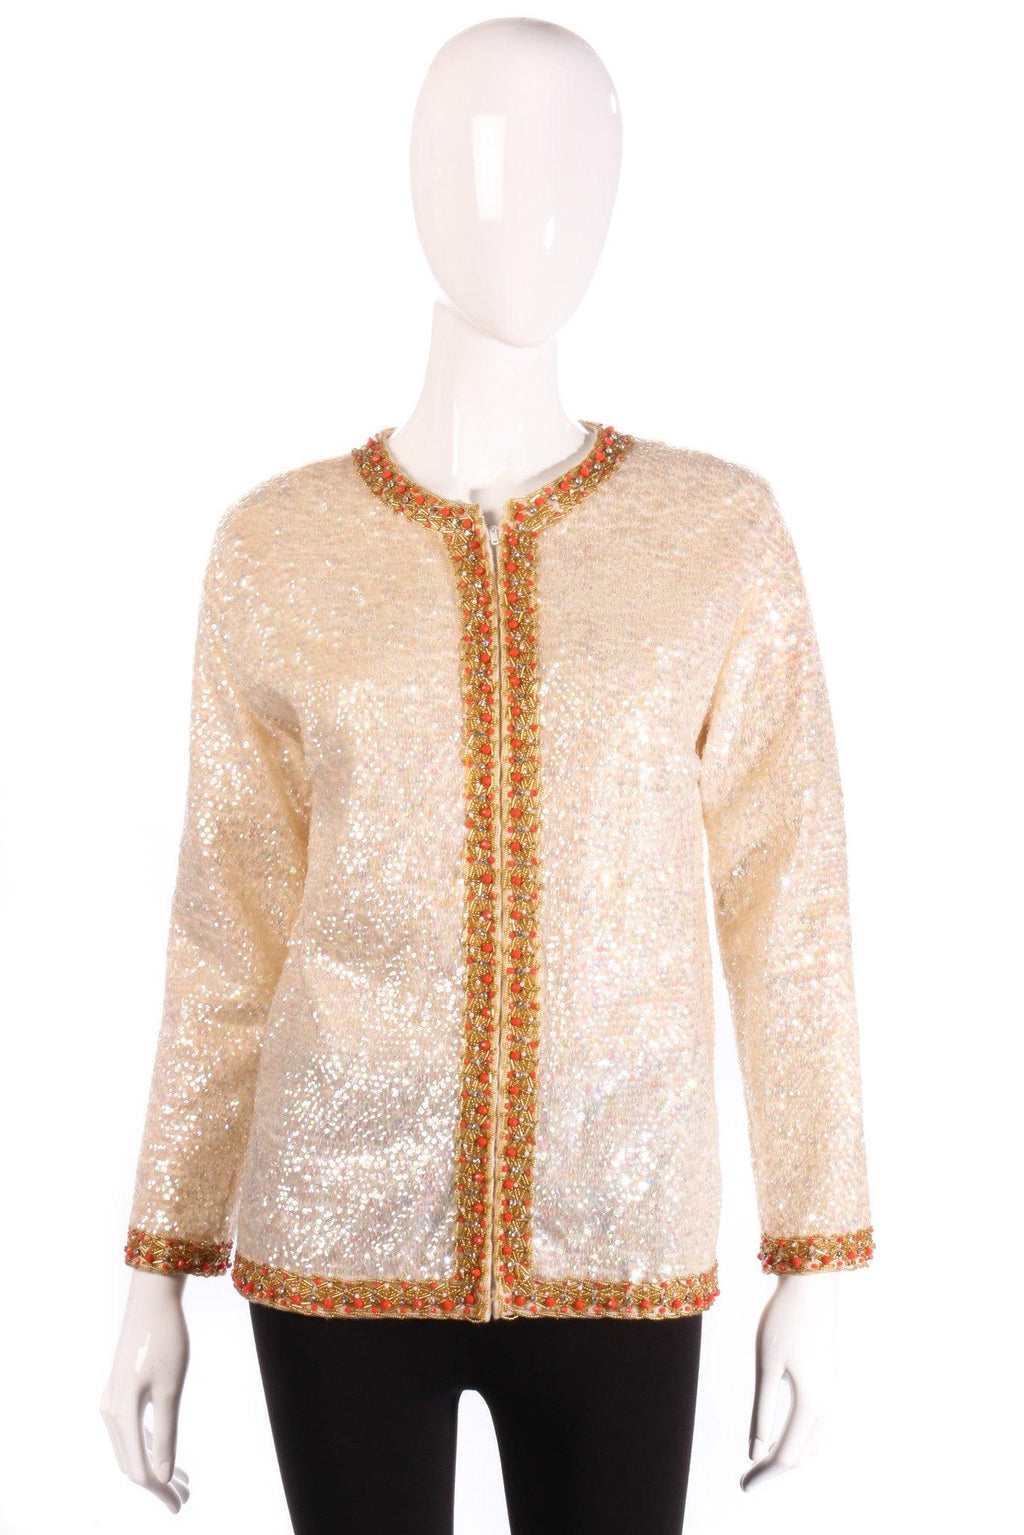 Hatais cream sequin jacket